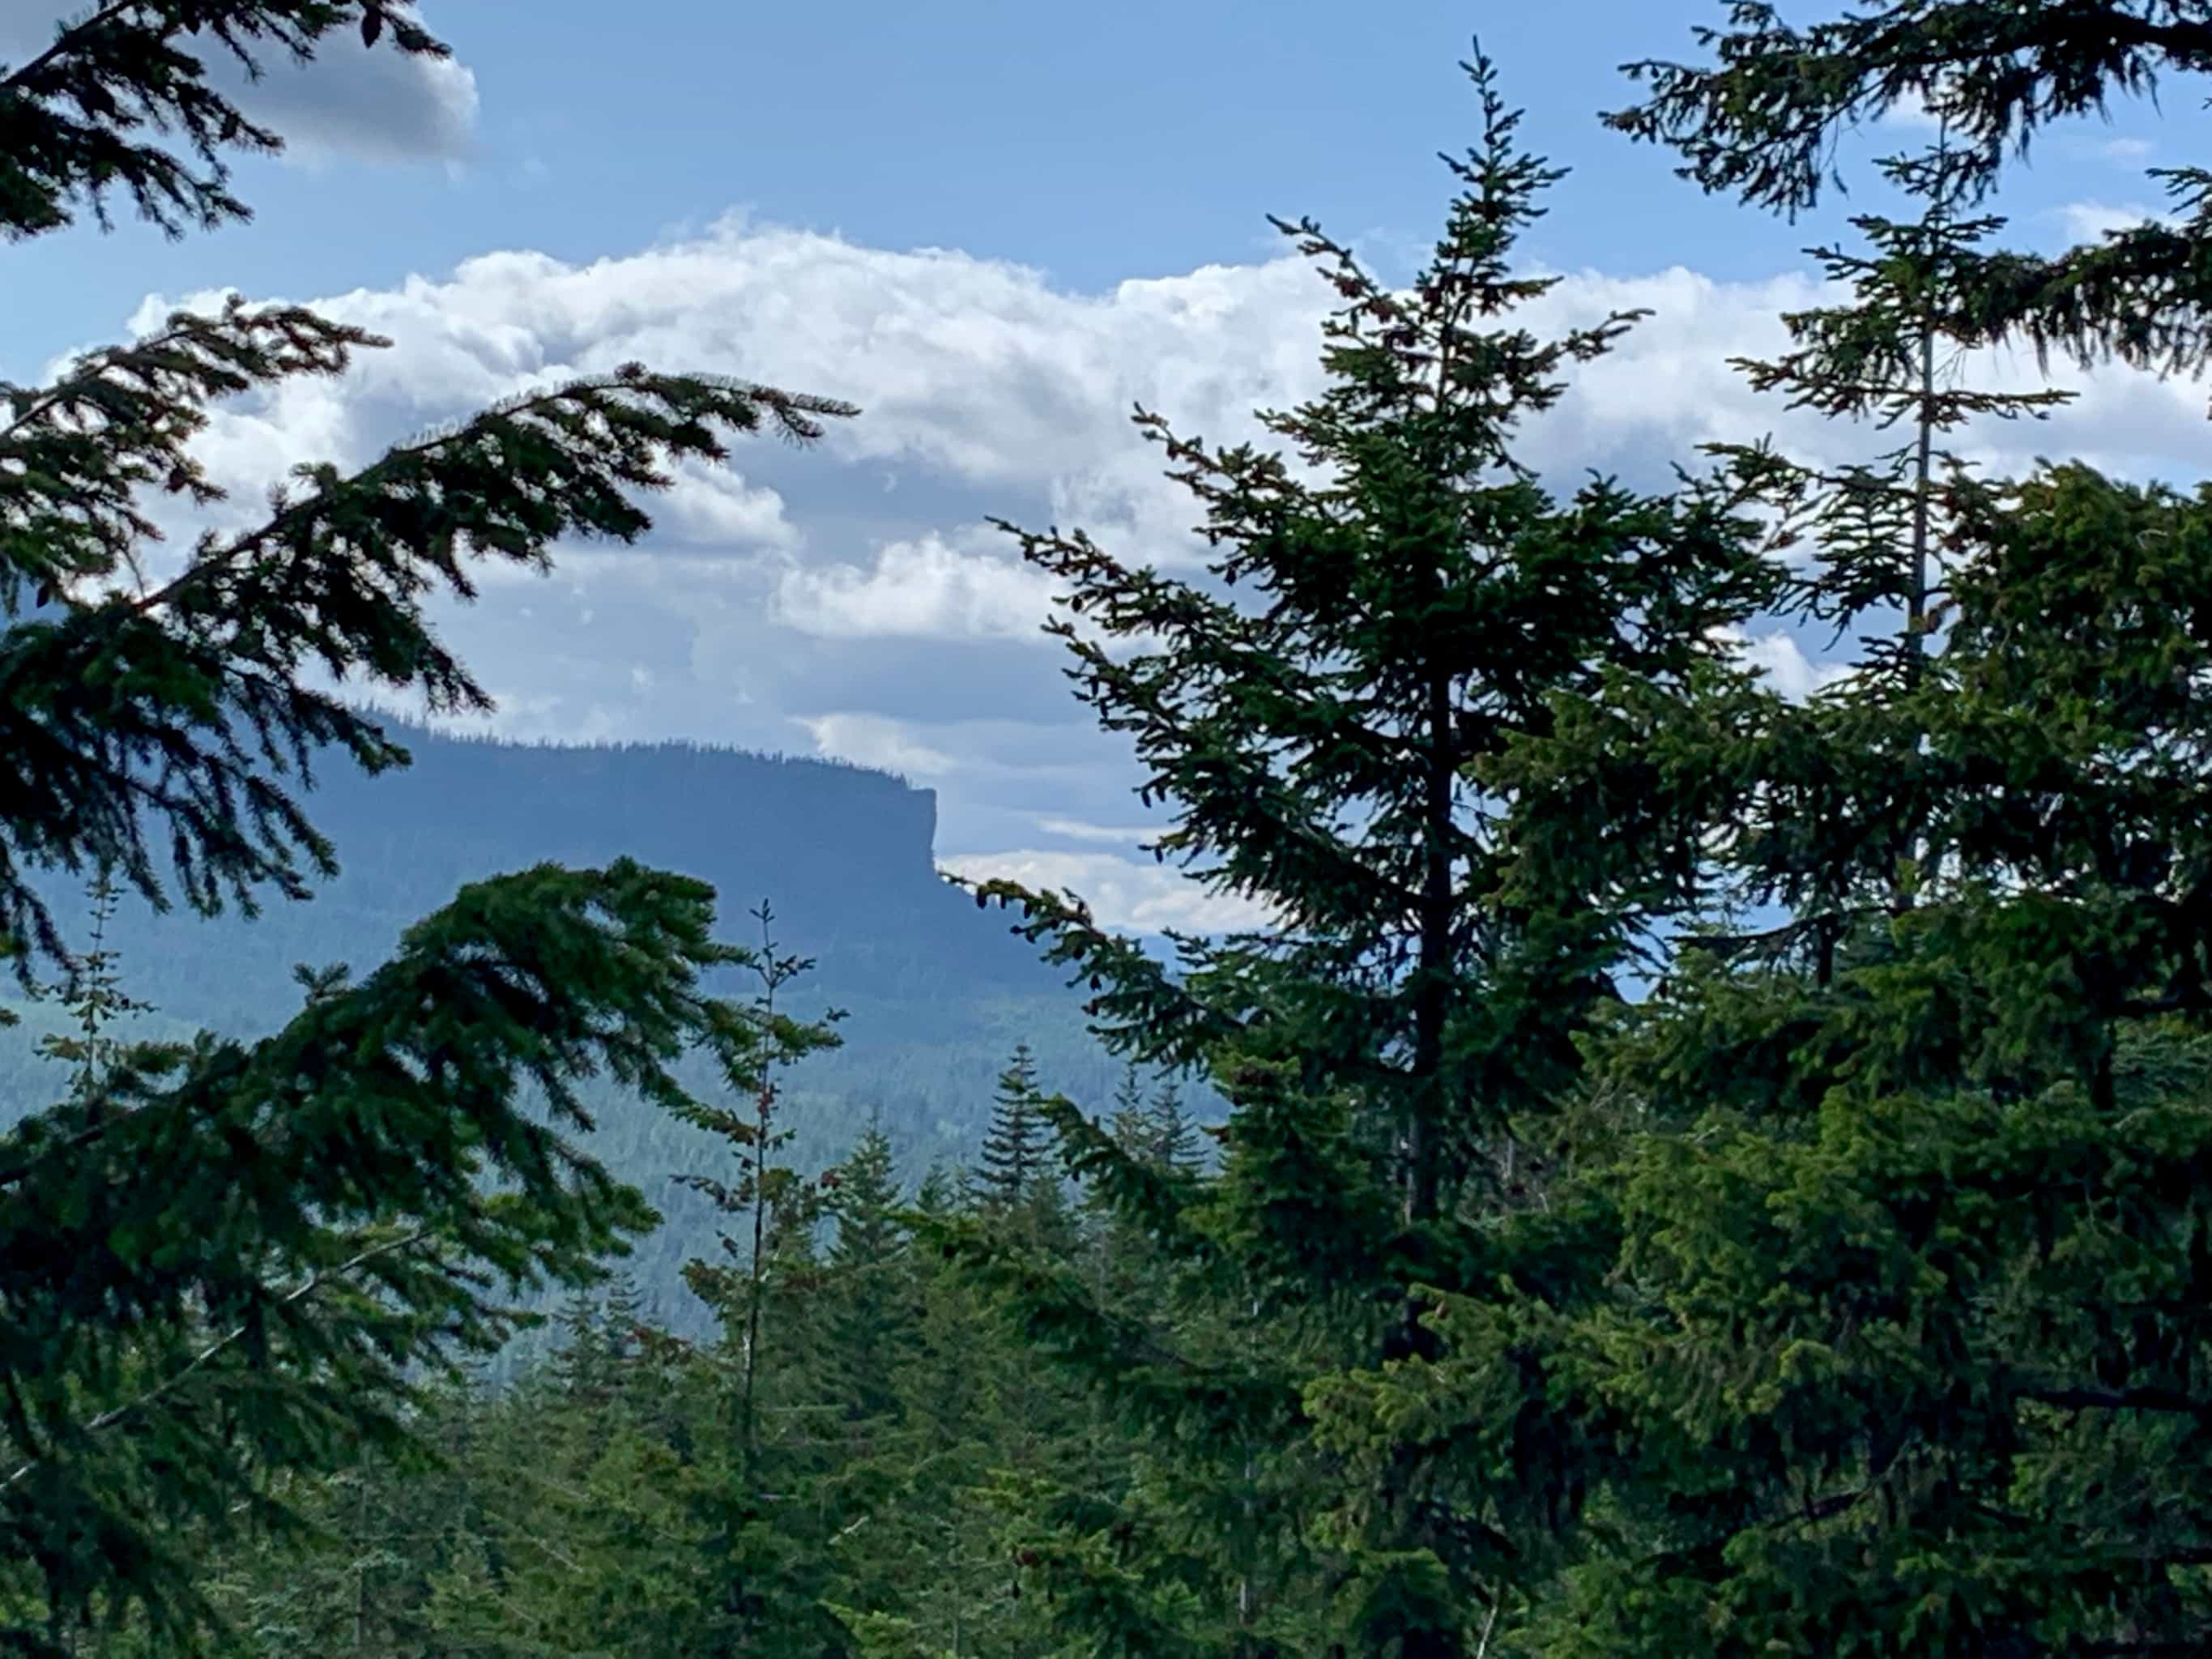 Distant view of Steamboat Mountain from gravel road near Trout Lake, Washington in Gifford Pinchot National Forest.